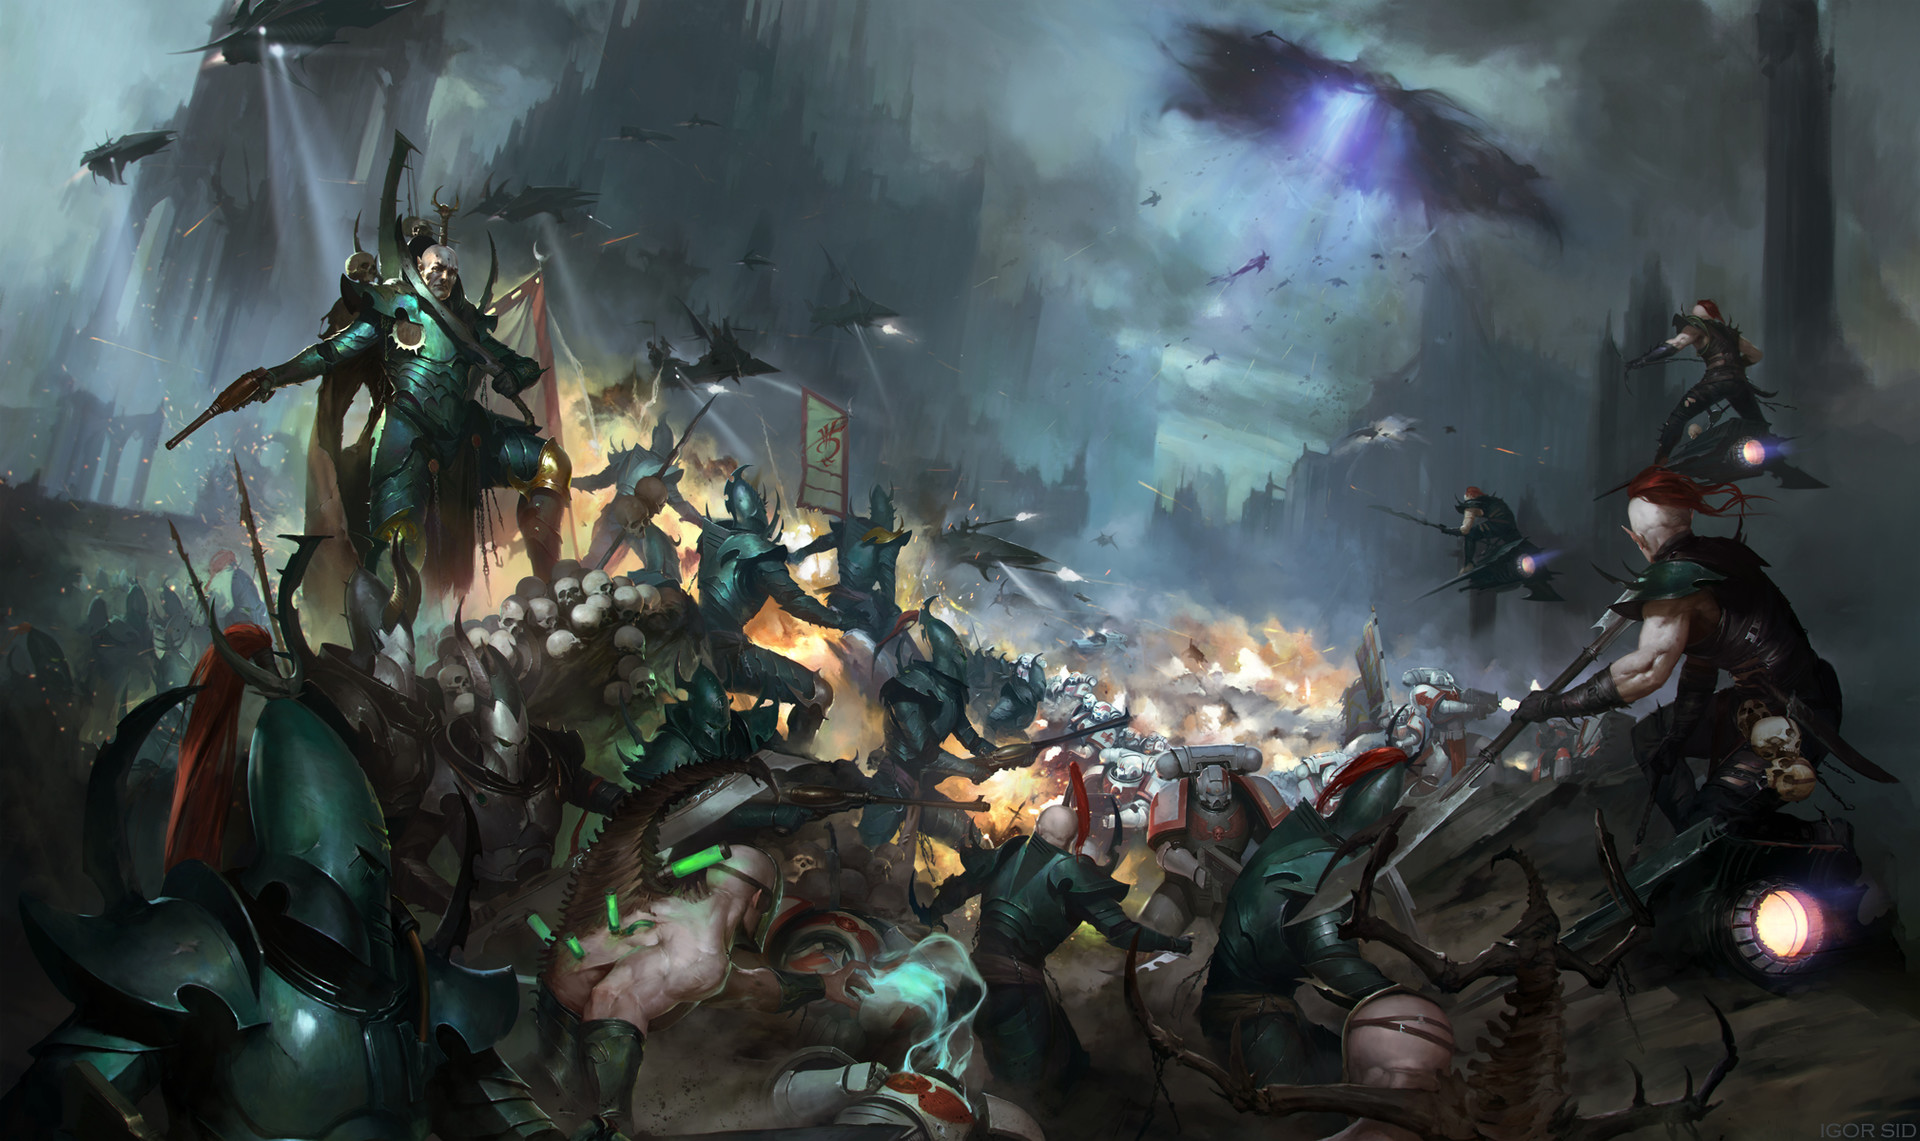 Dark Eldar in battle the White Scars